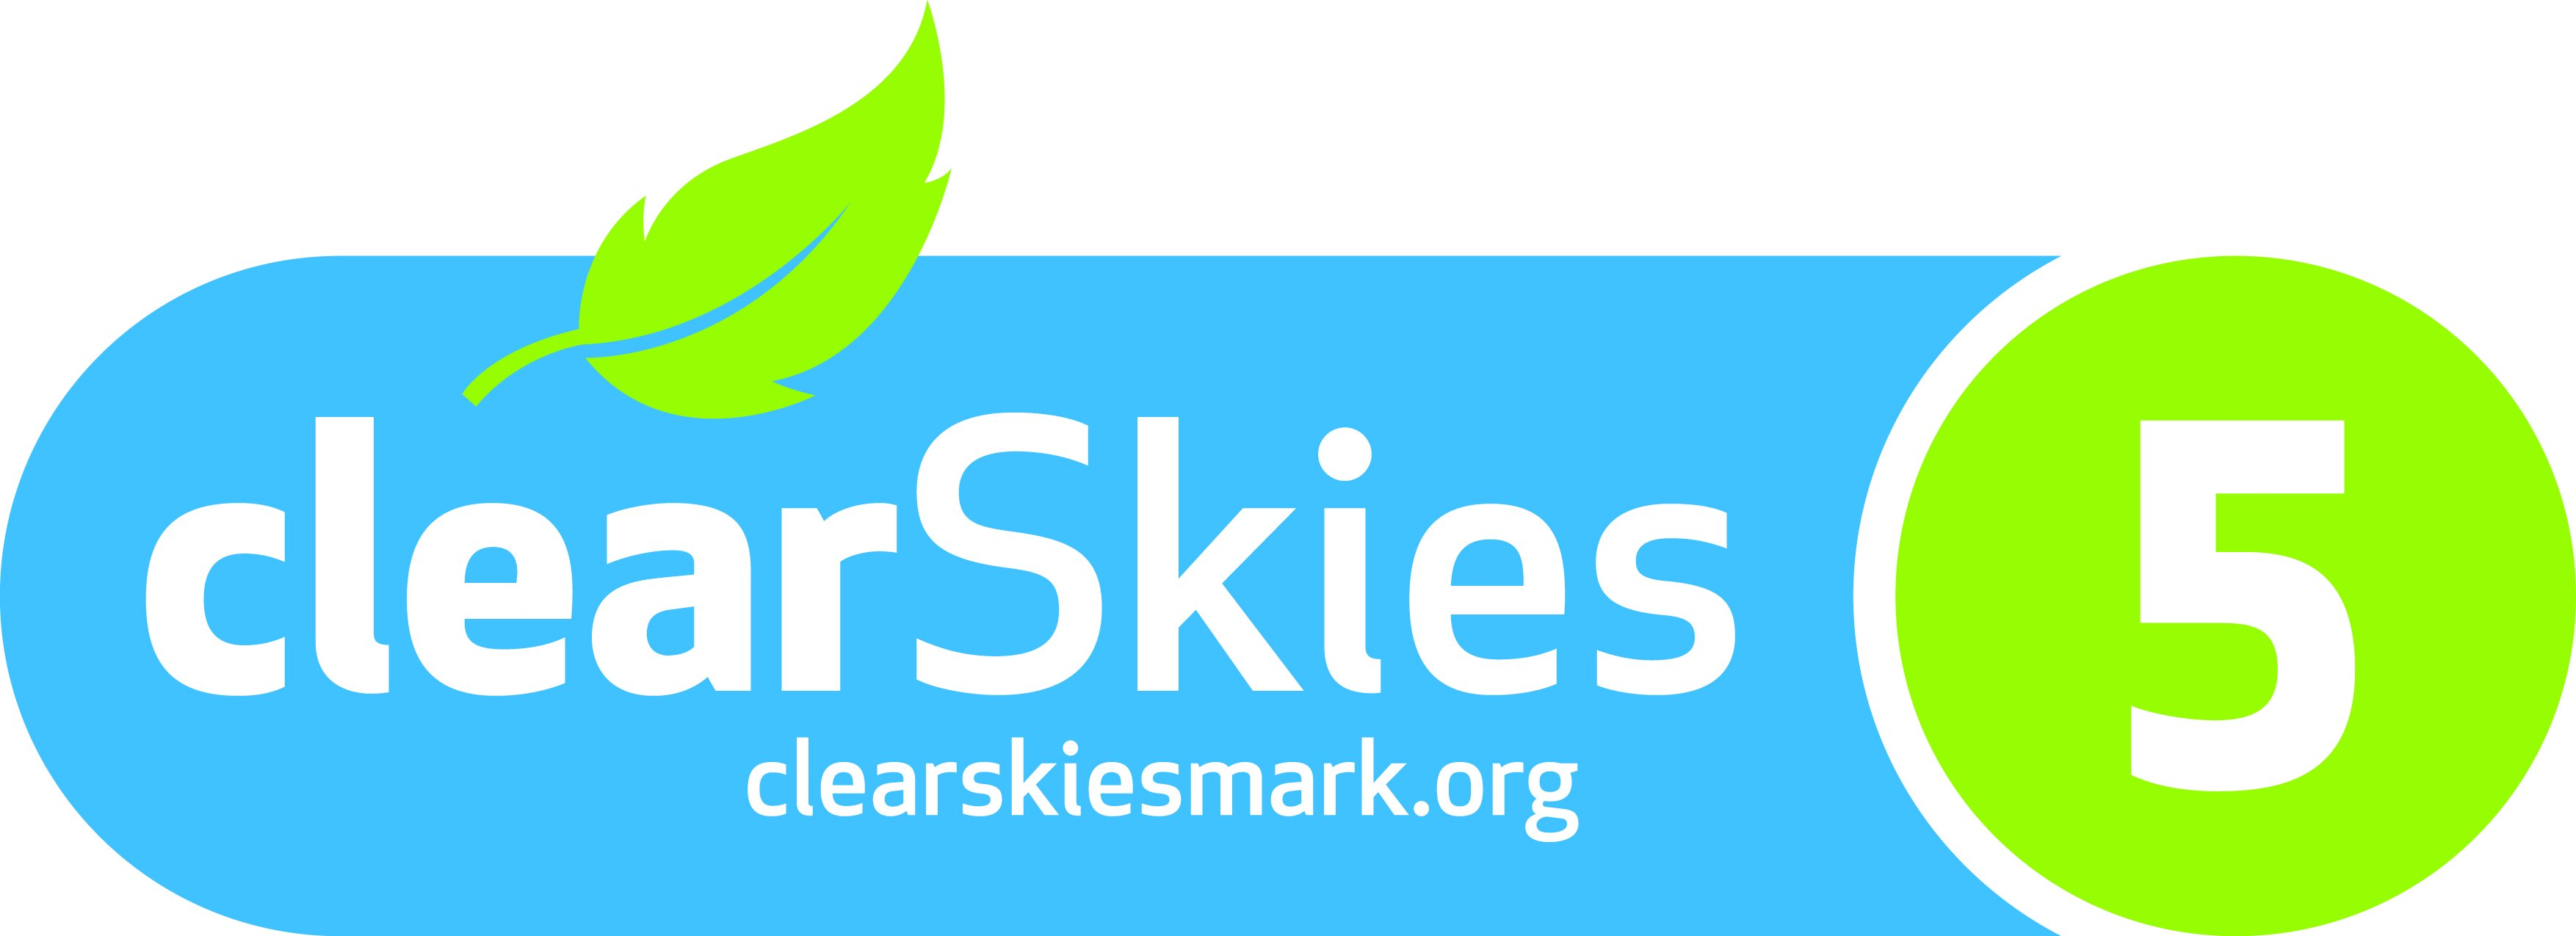 clearskies_rating_5_logo.